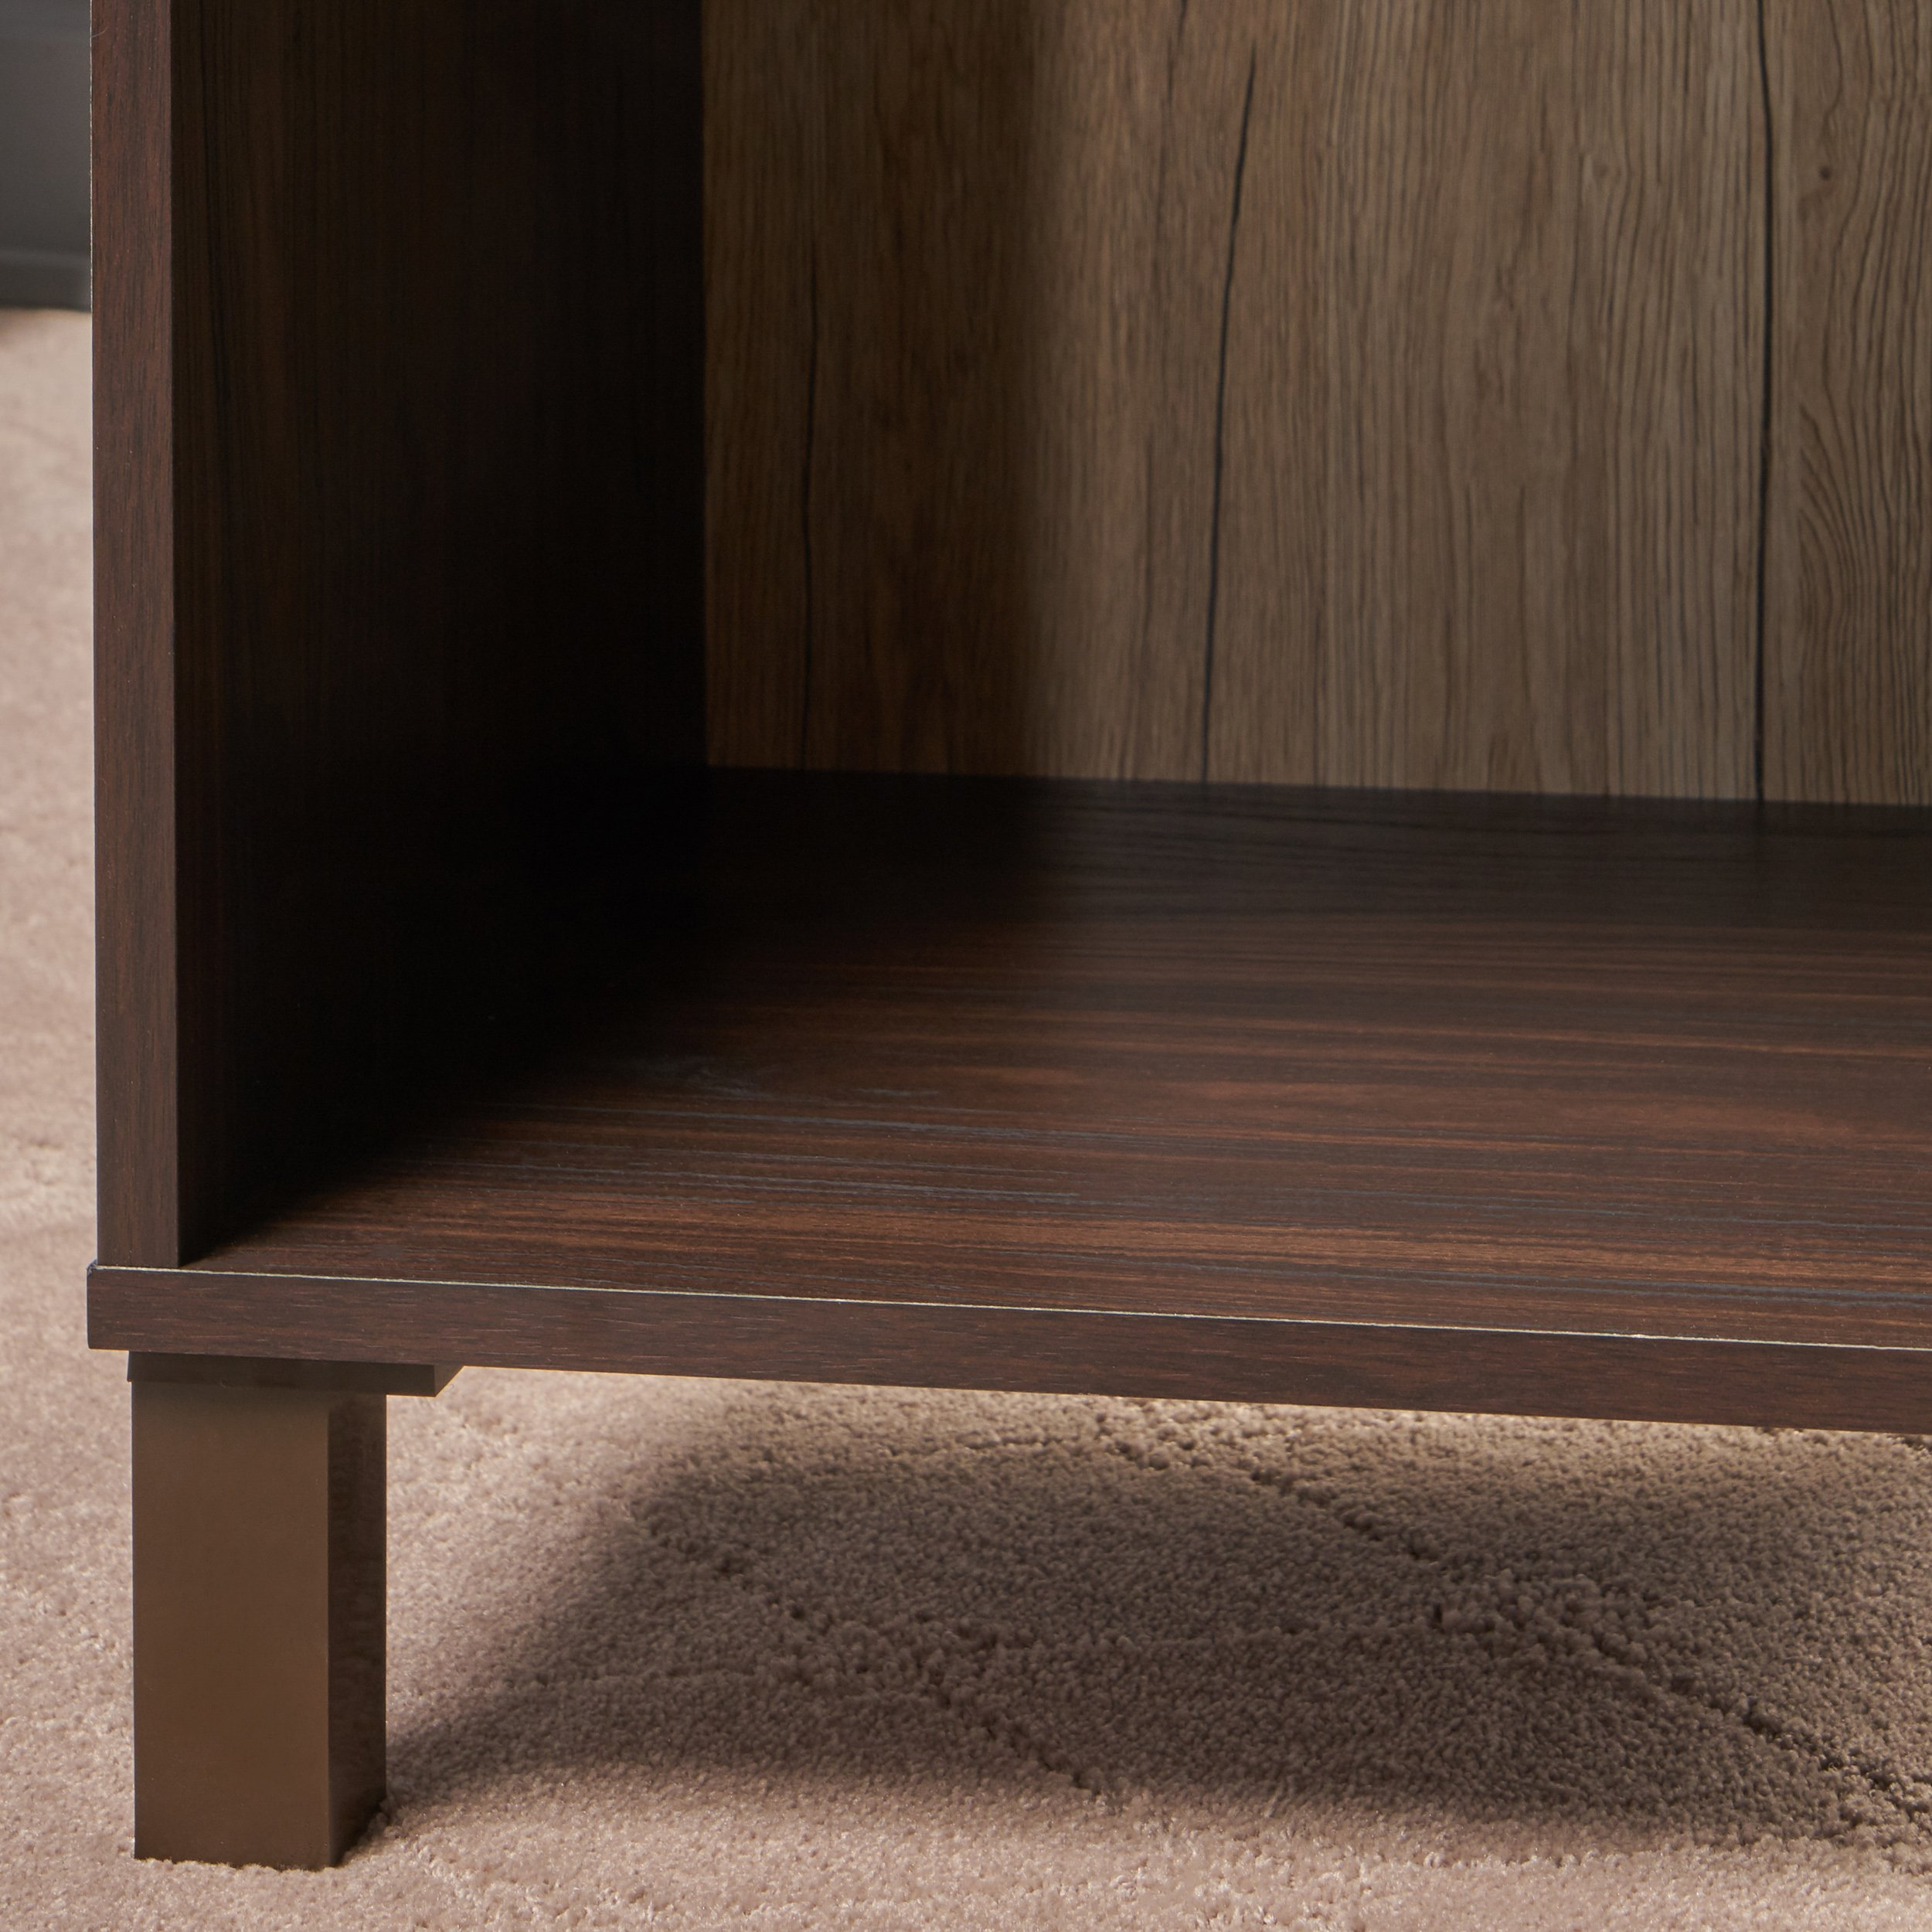 Christopher Knight Home 303655 Linnea Wood Cabinet, Walnut/Sanremo Oak/Brown by Christopher Knight Home (Image #4)